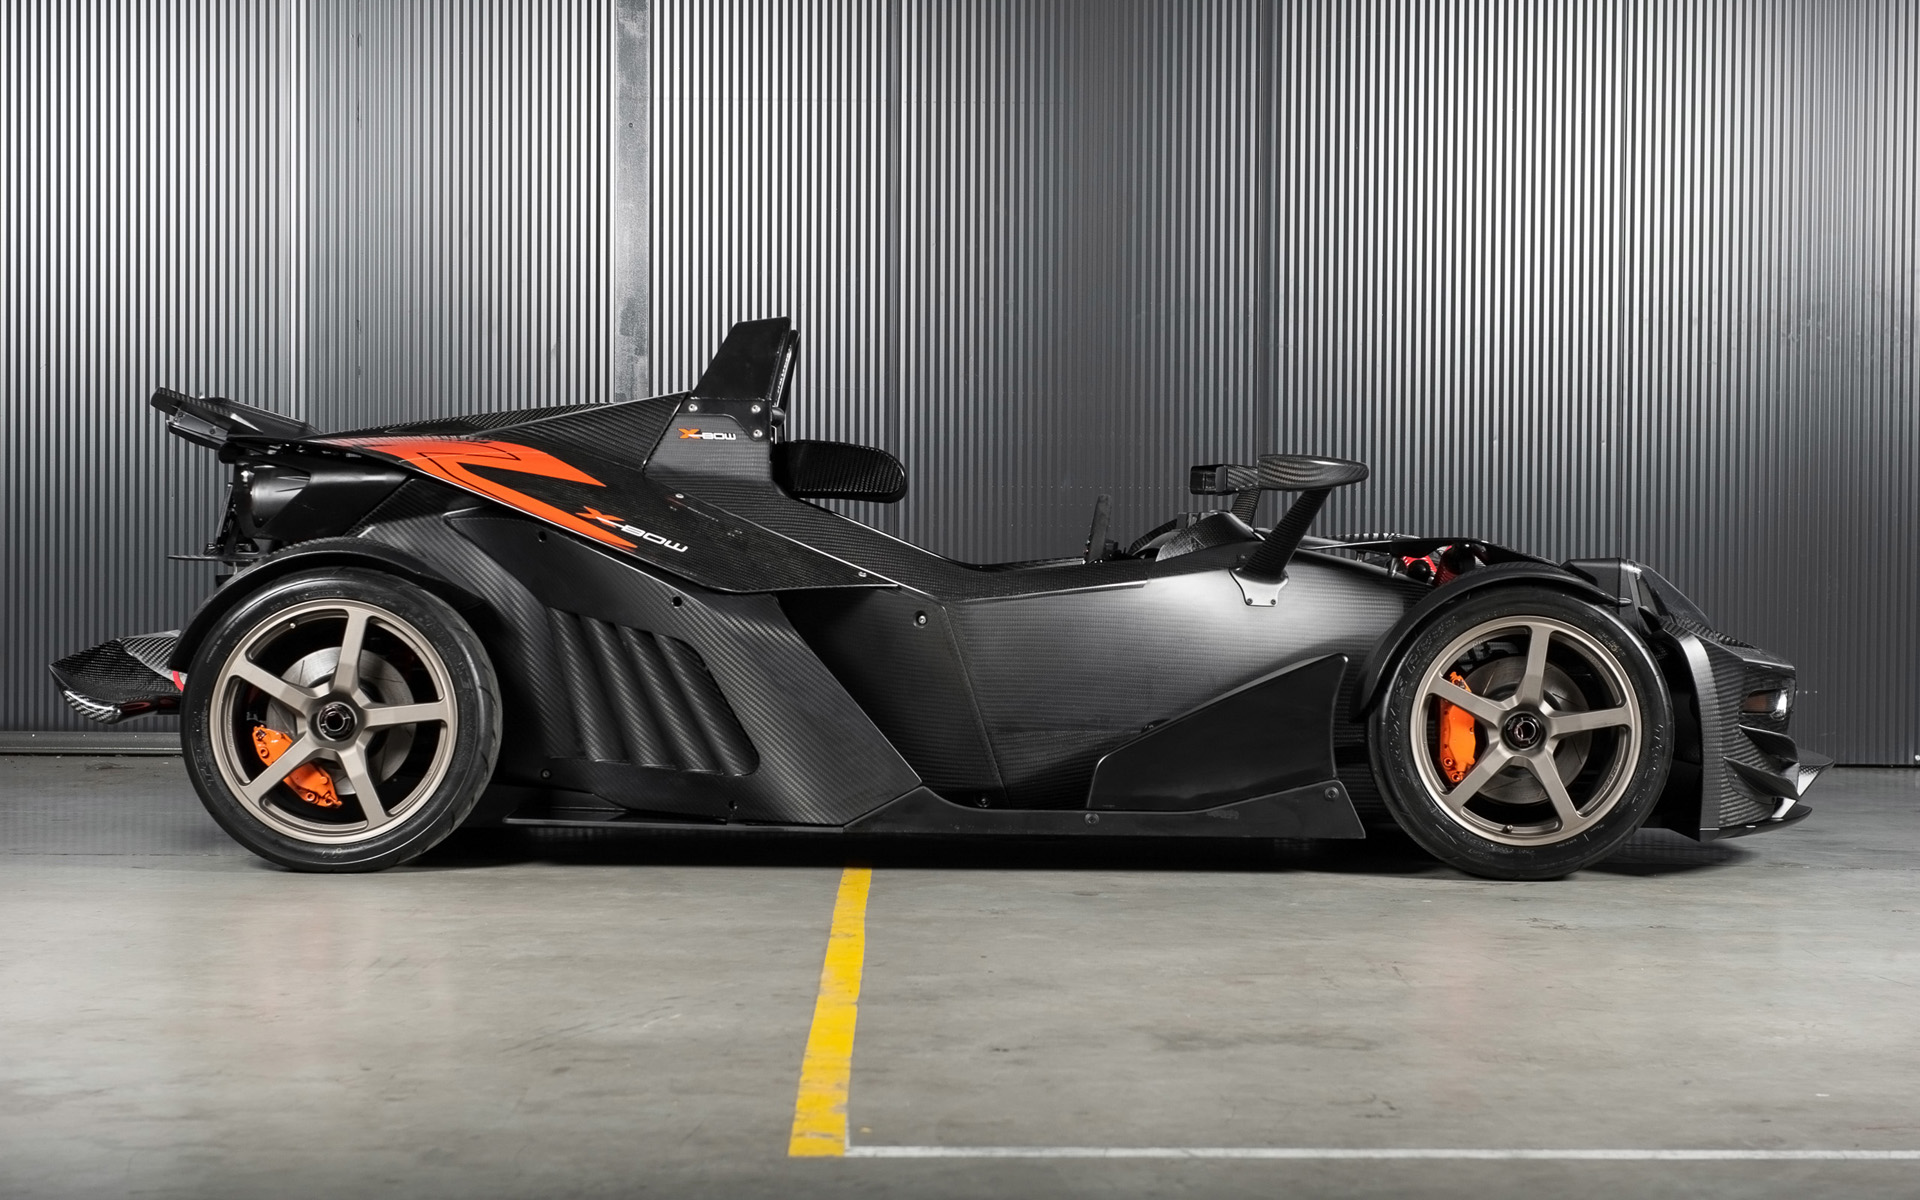 2014 KTM X Bow RR Wallpaper And Image Gallery